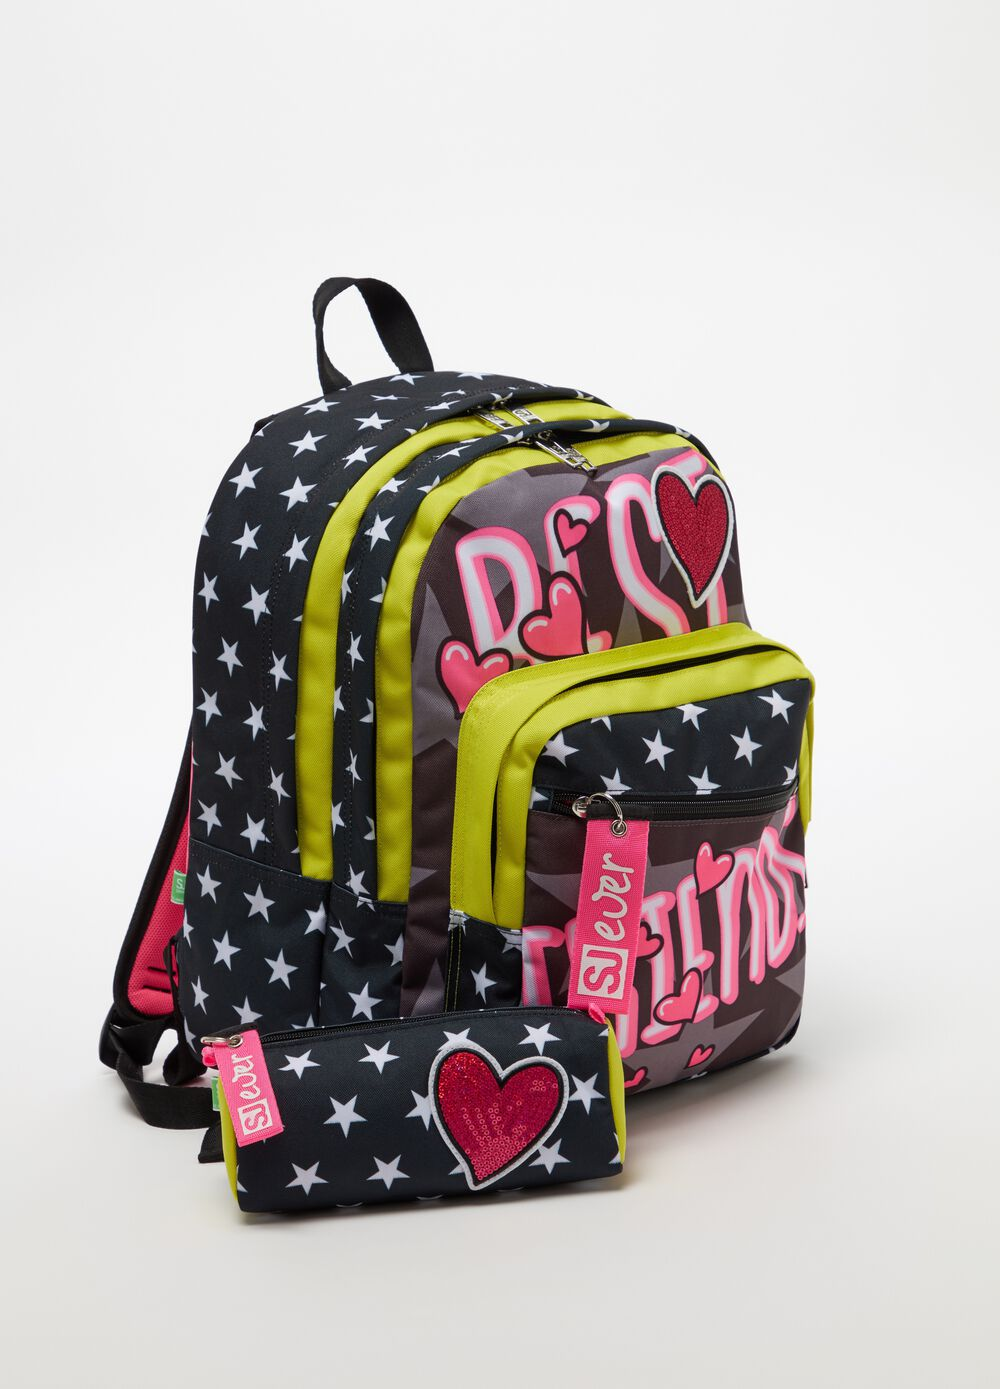 SJ EVER backpack and bag